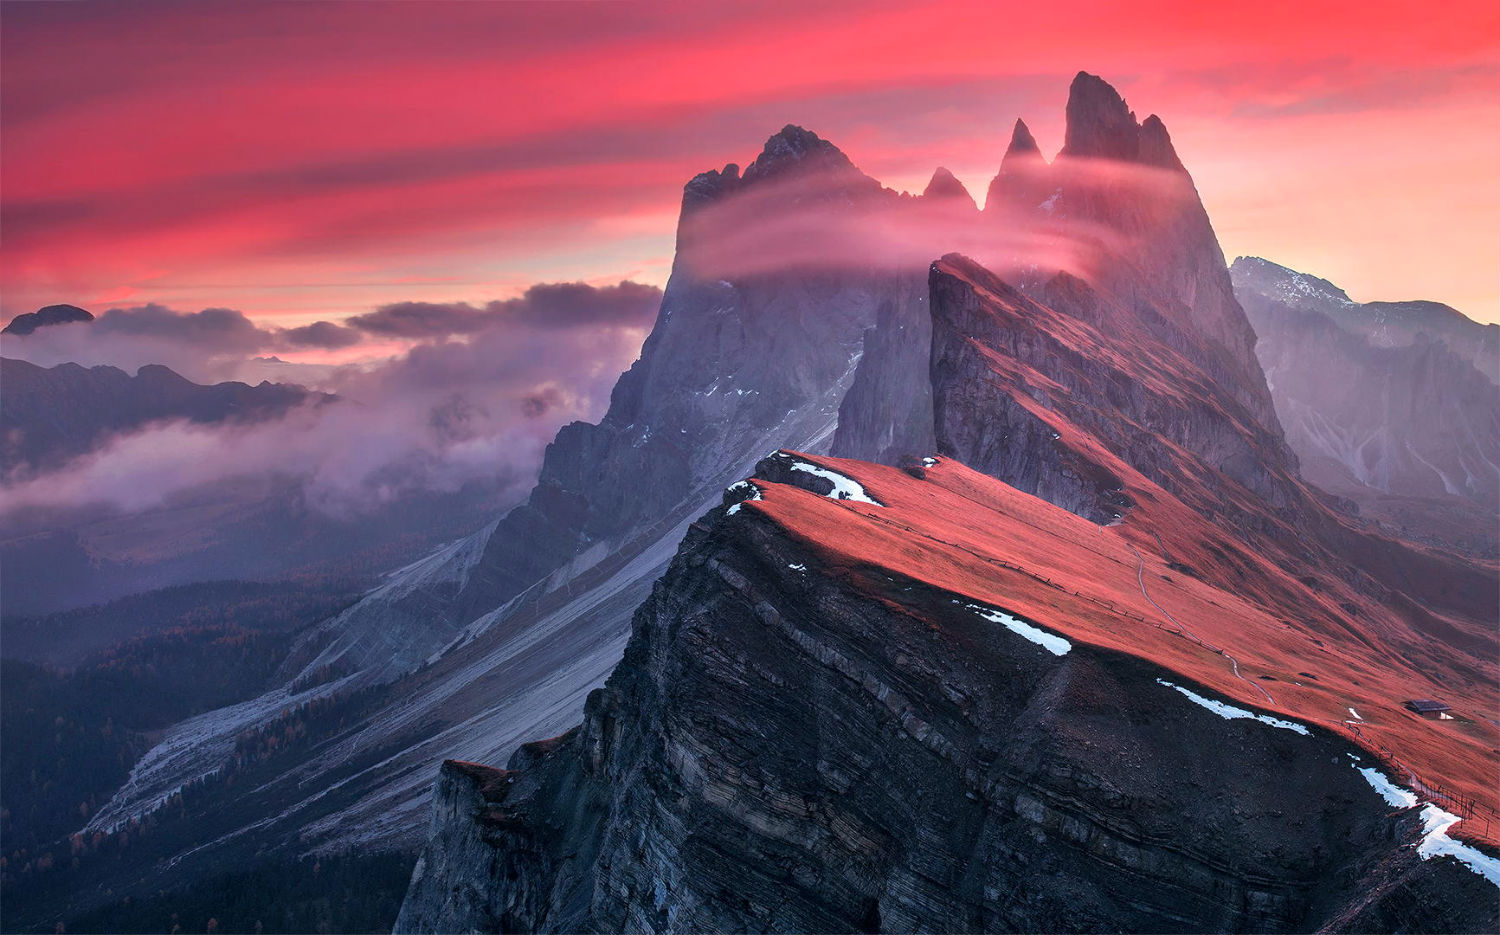 max rive photography landscape nature view colour pink sky